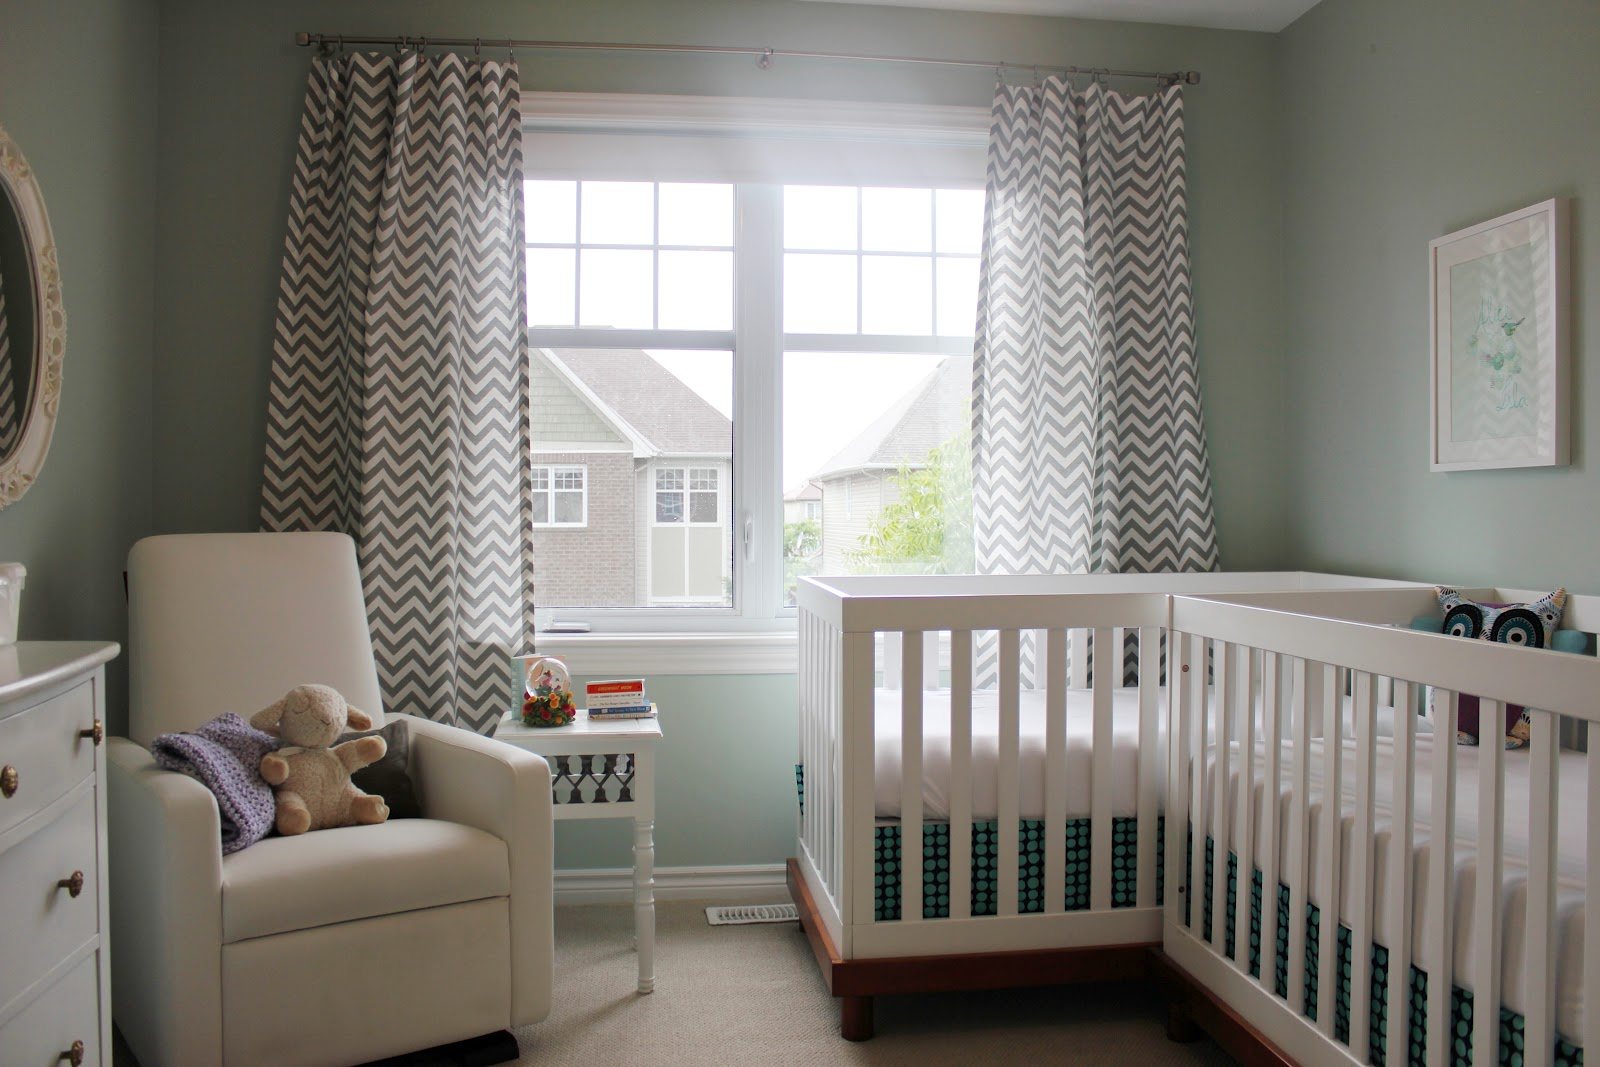 Double the trouble and love sweet and delightful twin nurseries - Crib for small space ideas ...